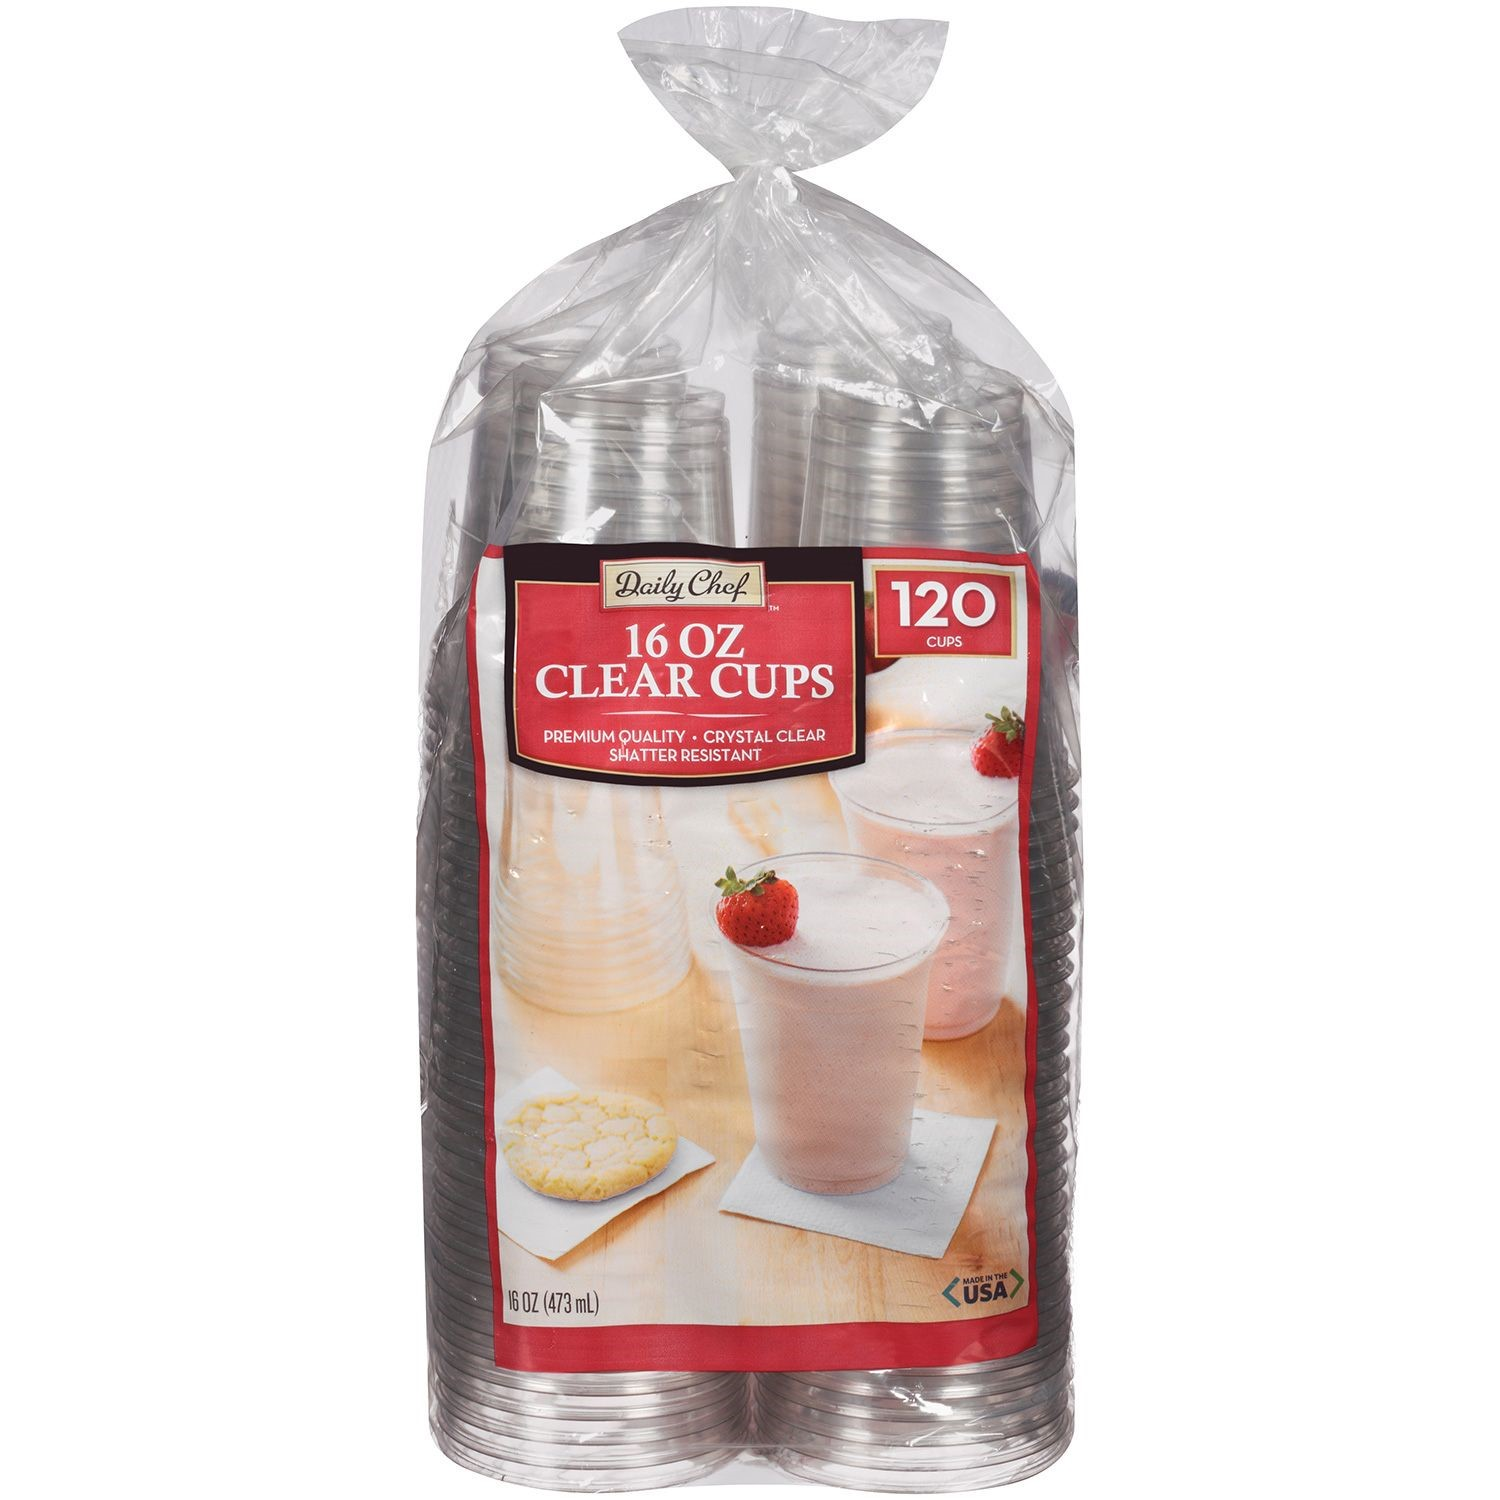 Daily Chef Plastic Cups, Clear, 120 Ct